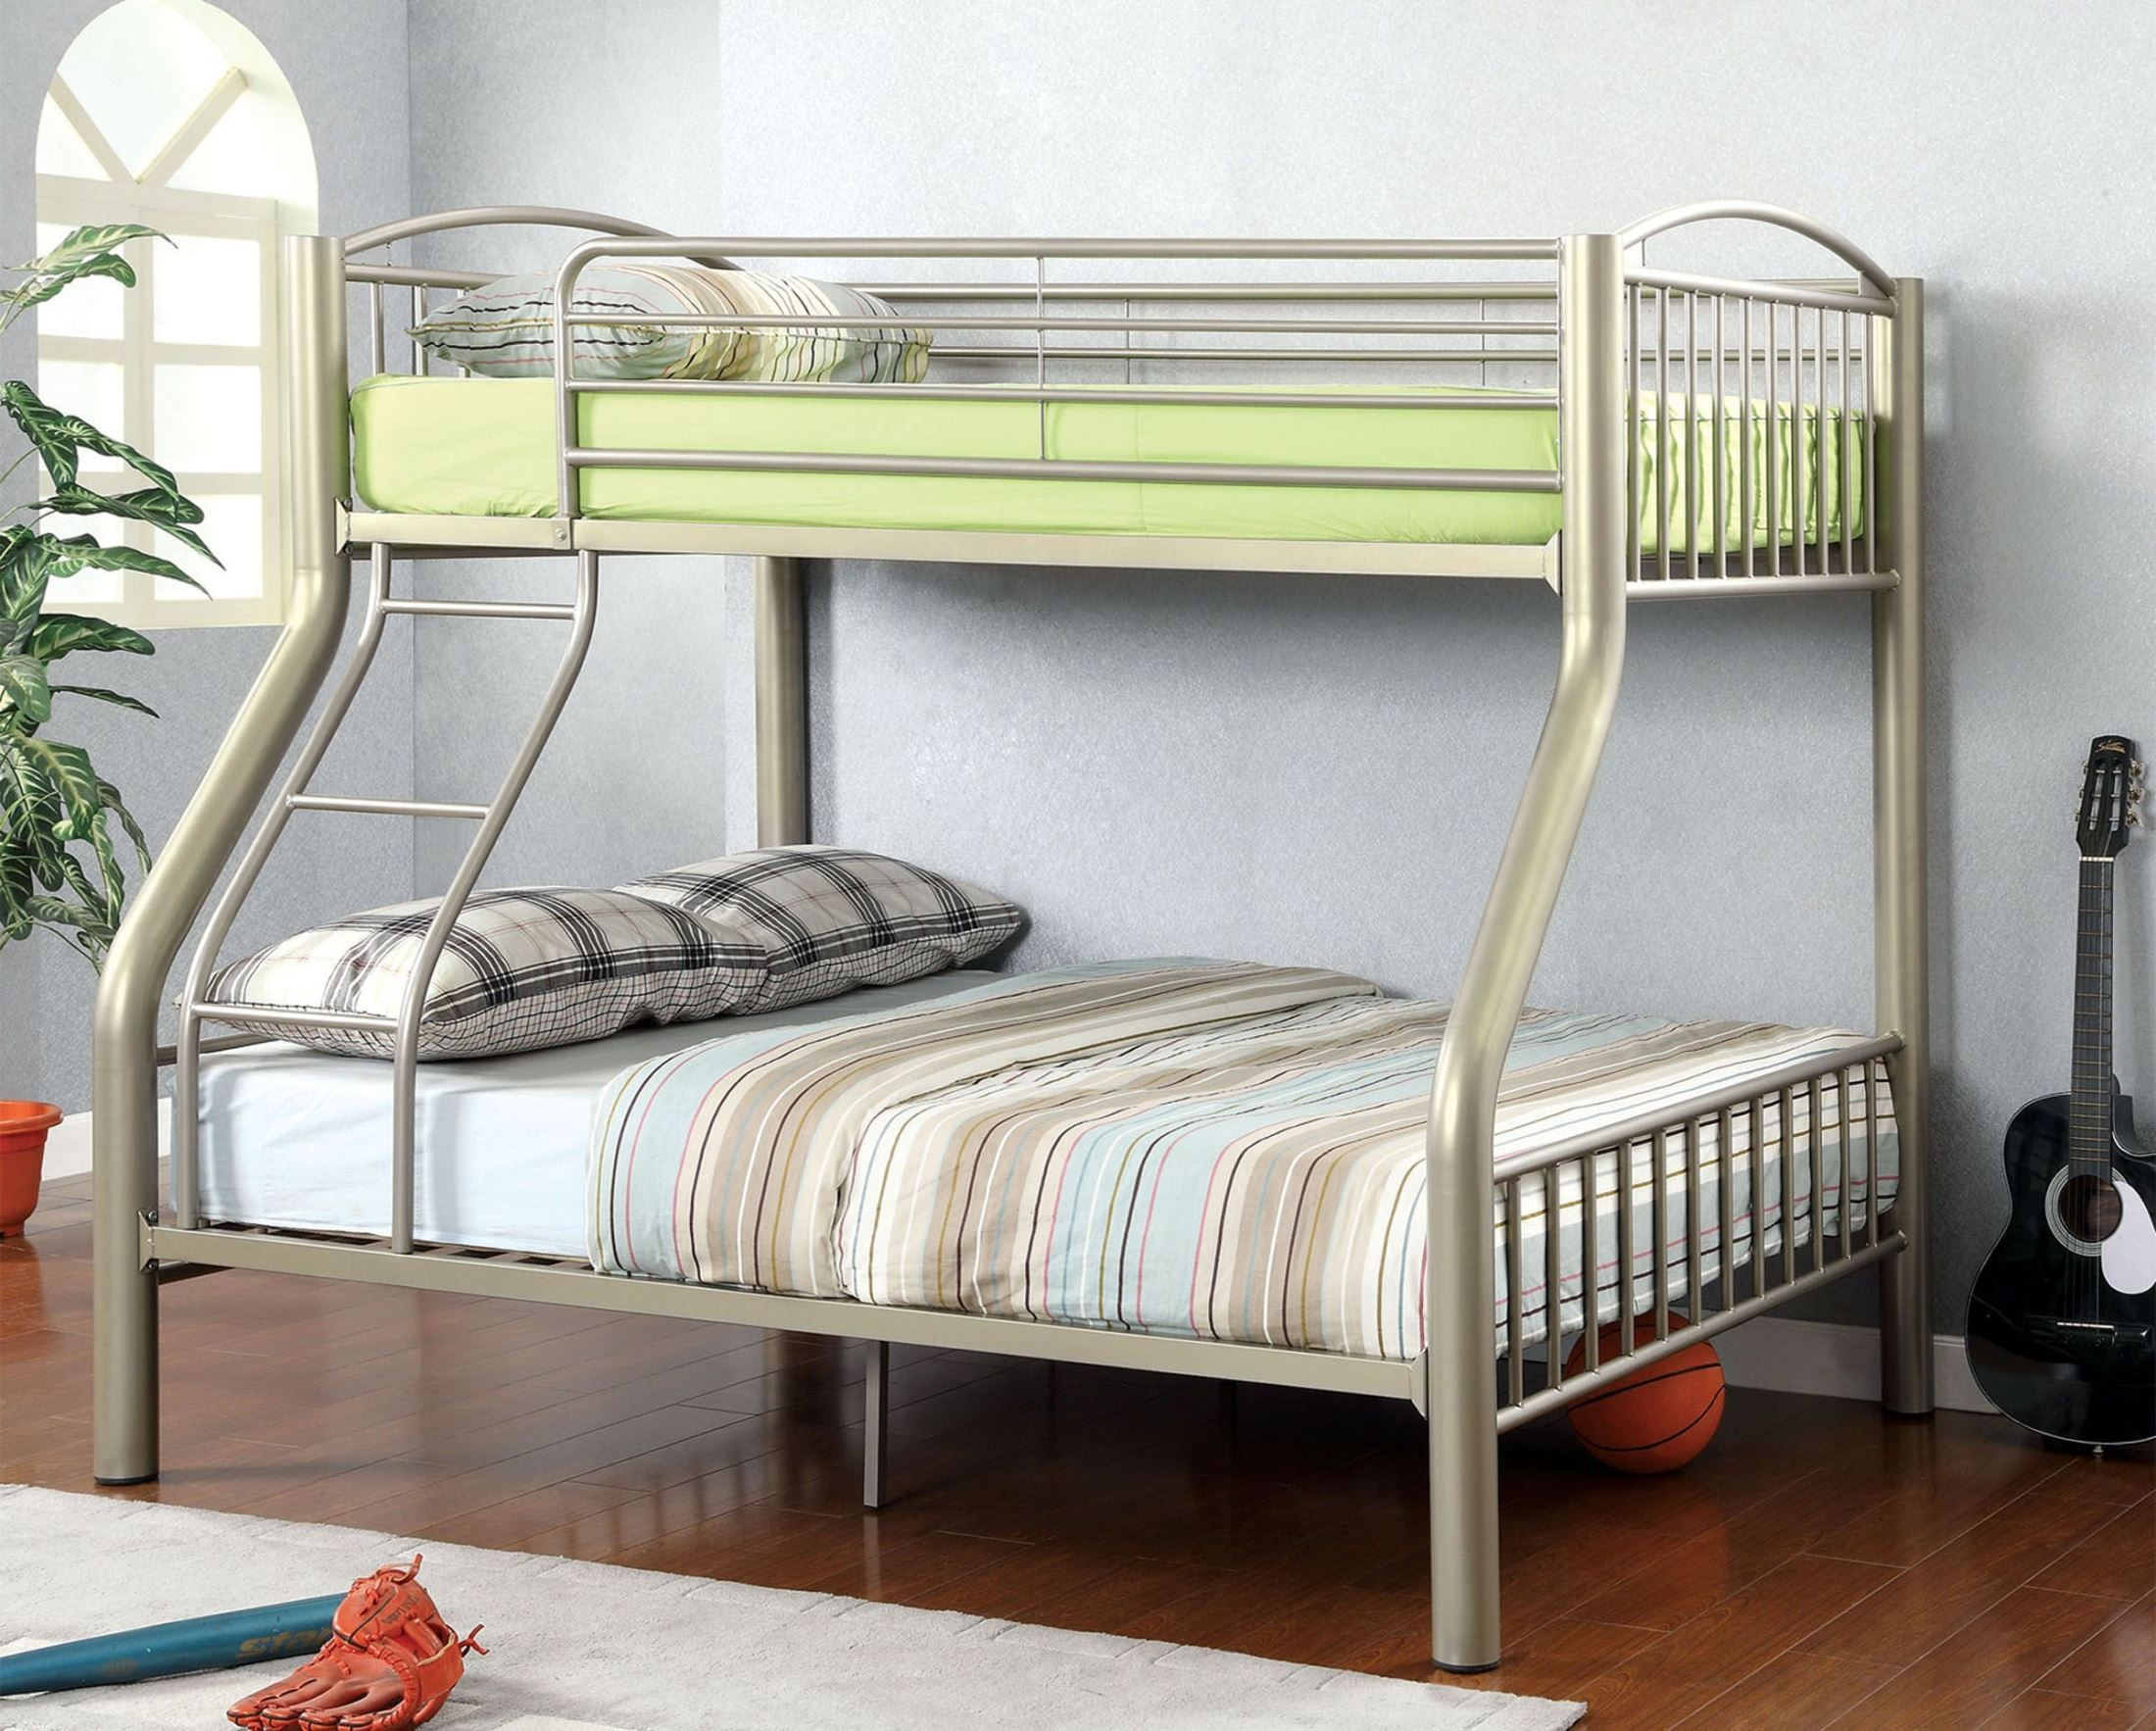 Lovia Twin Over Full Metal Bunk Bed from Furniture of